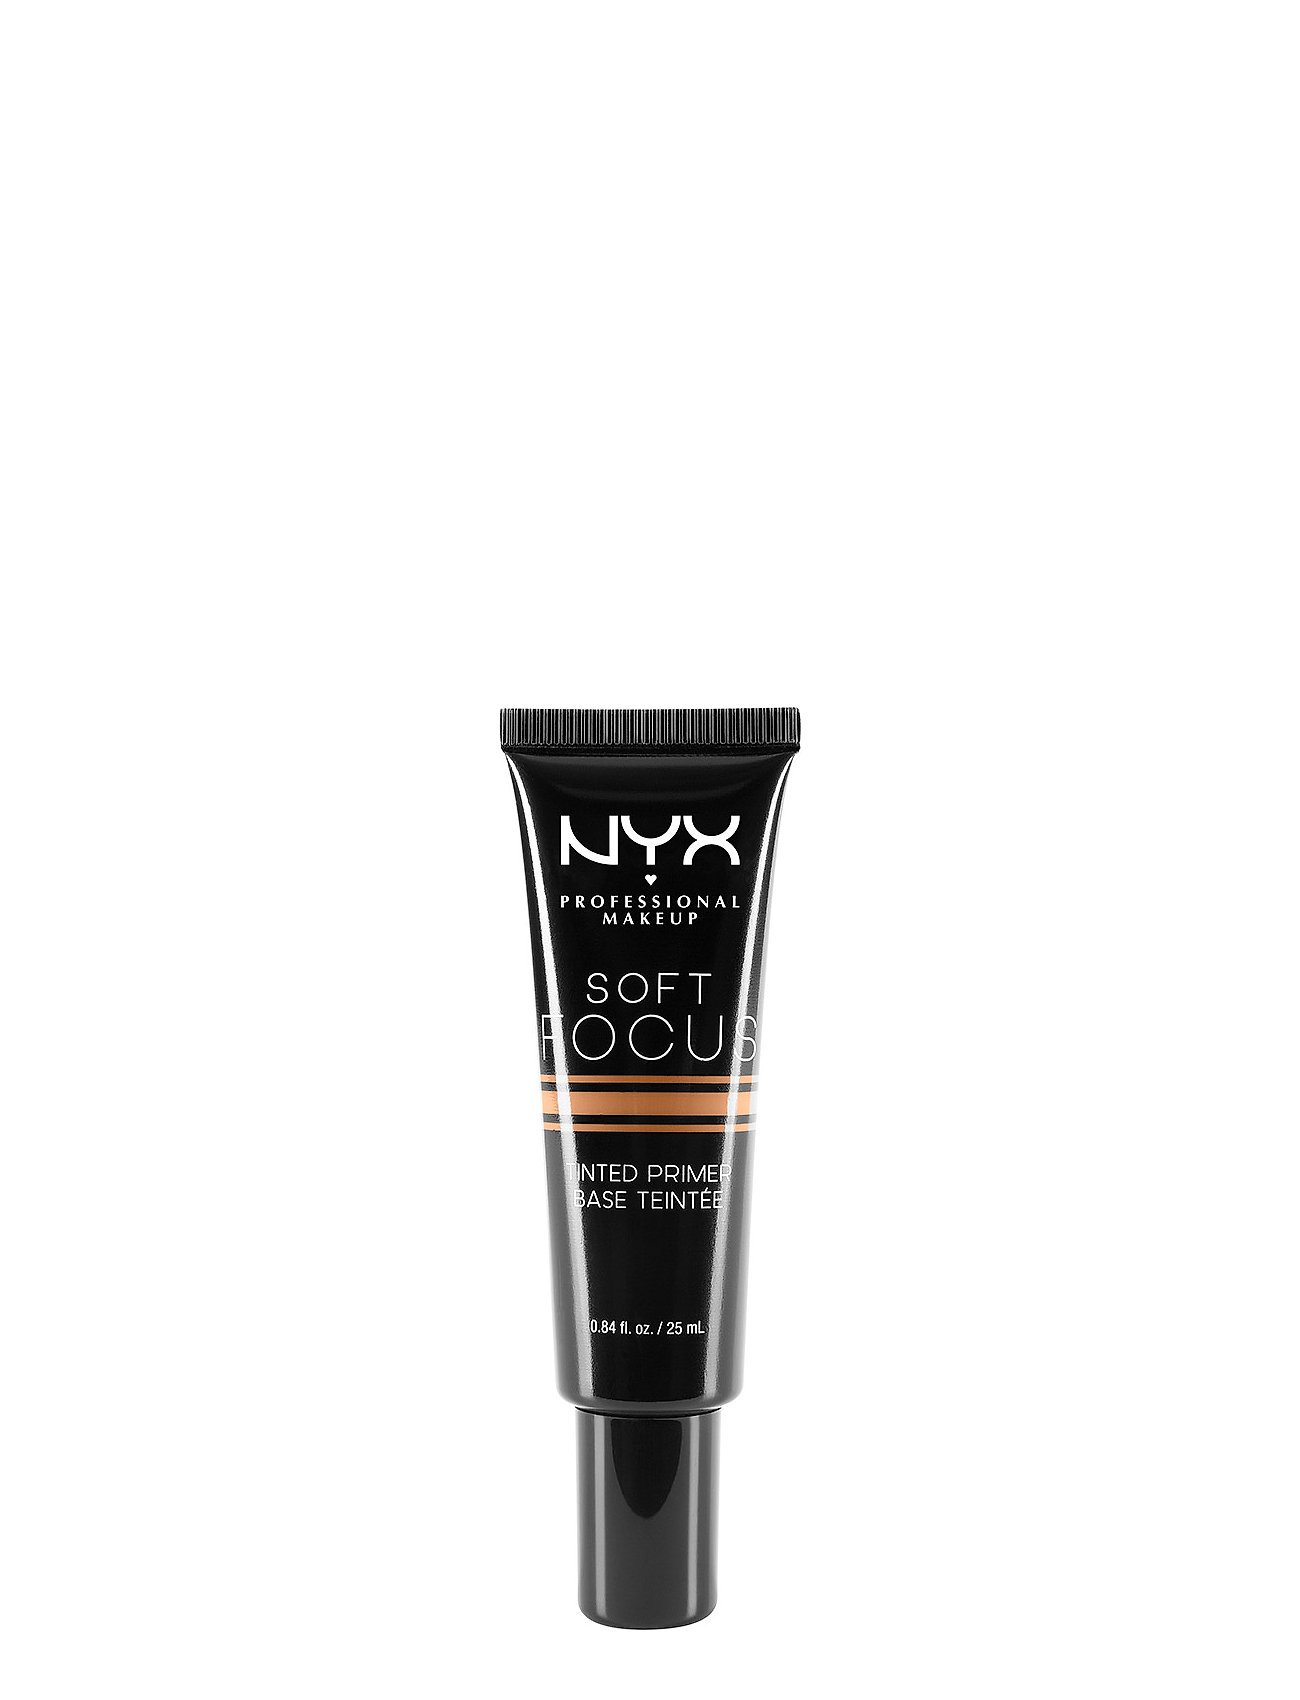 Image of Soft Focus Tinted Primer Makeupprimer Makeup NYX PROFESSIONAL MAKEUP (3158628633)